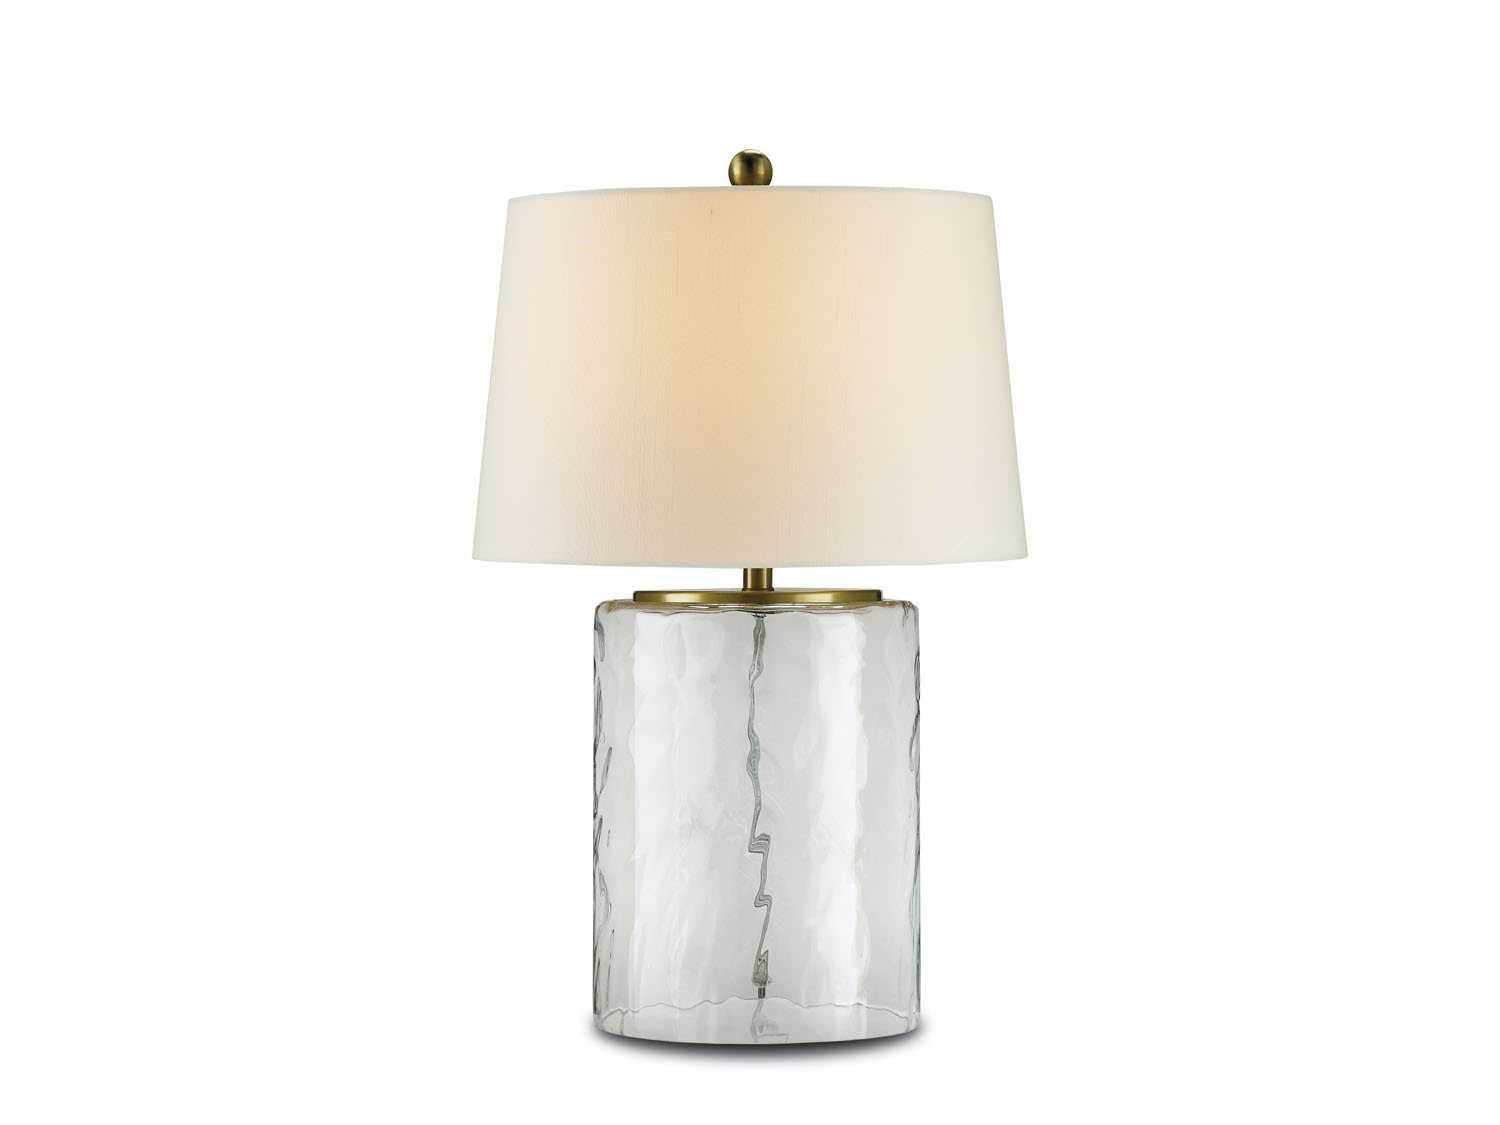 Currey And Company Lighting Currey Chandeliers Sale Lamp Table Lamp Chandelier For Sale